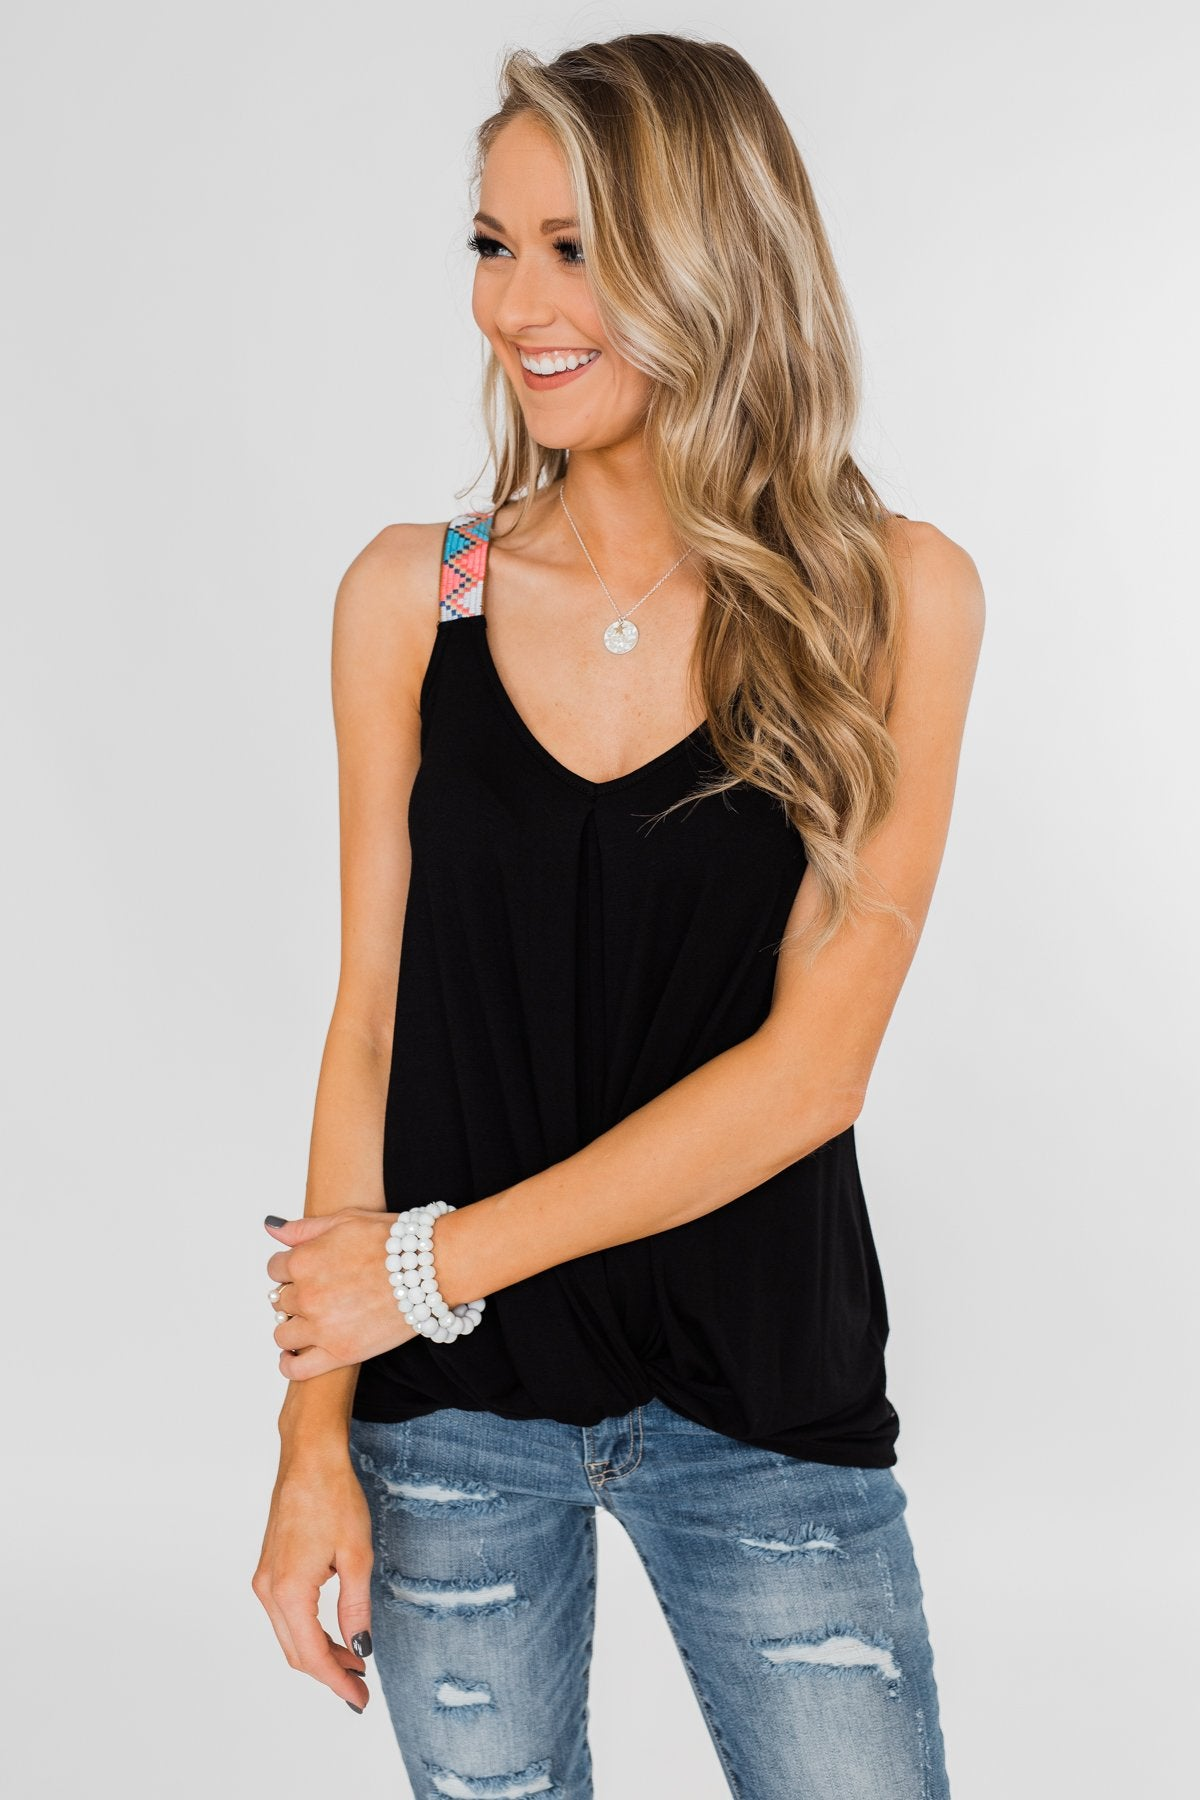 Somewhere Waiting for Me Twist Tank Top- Black